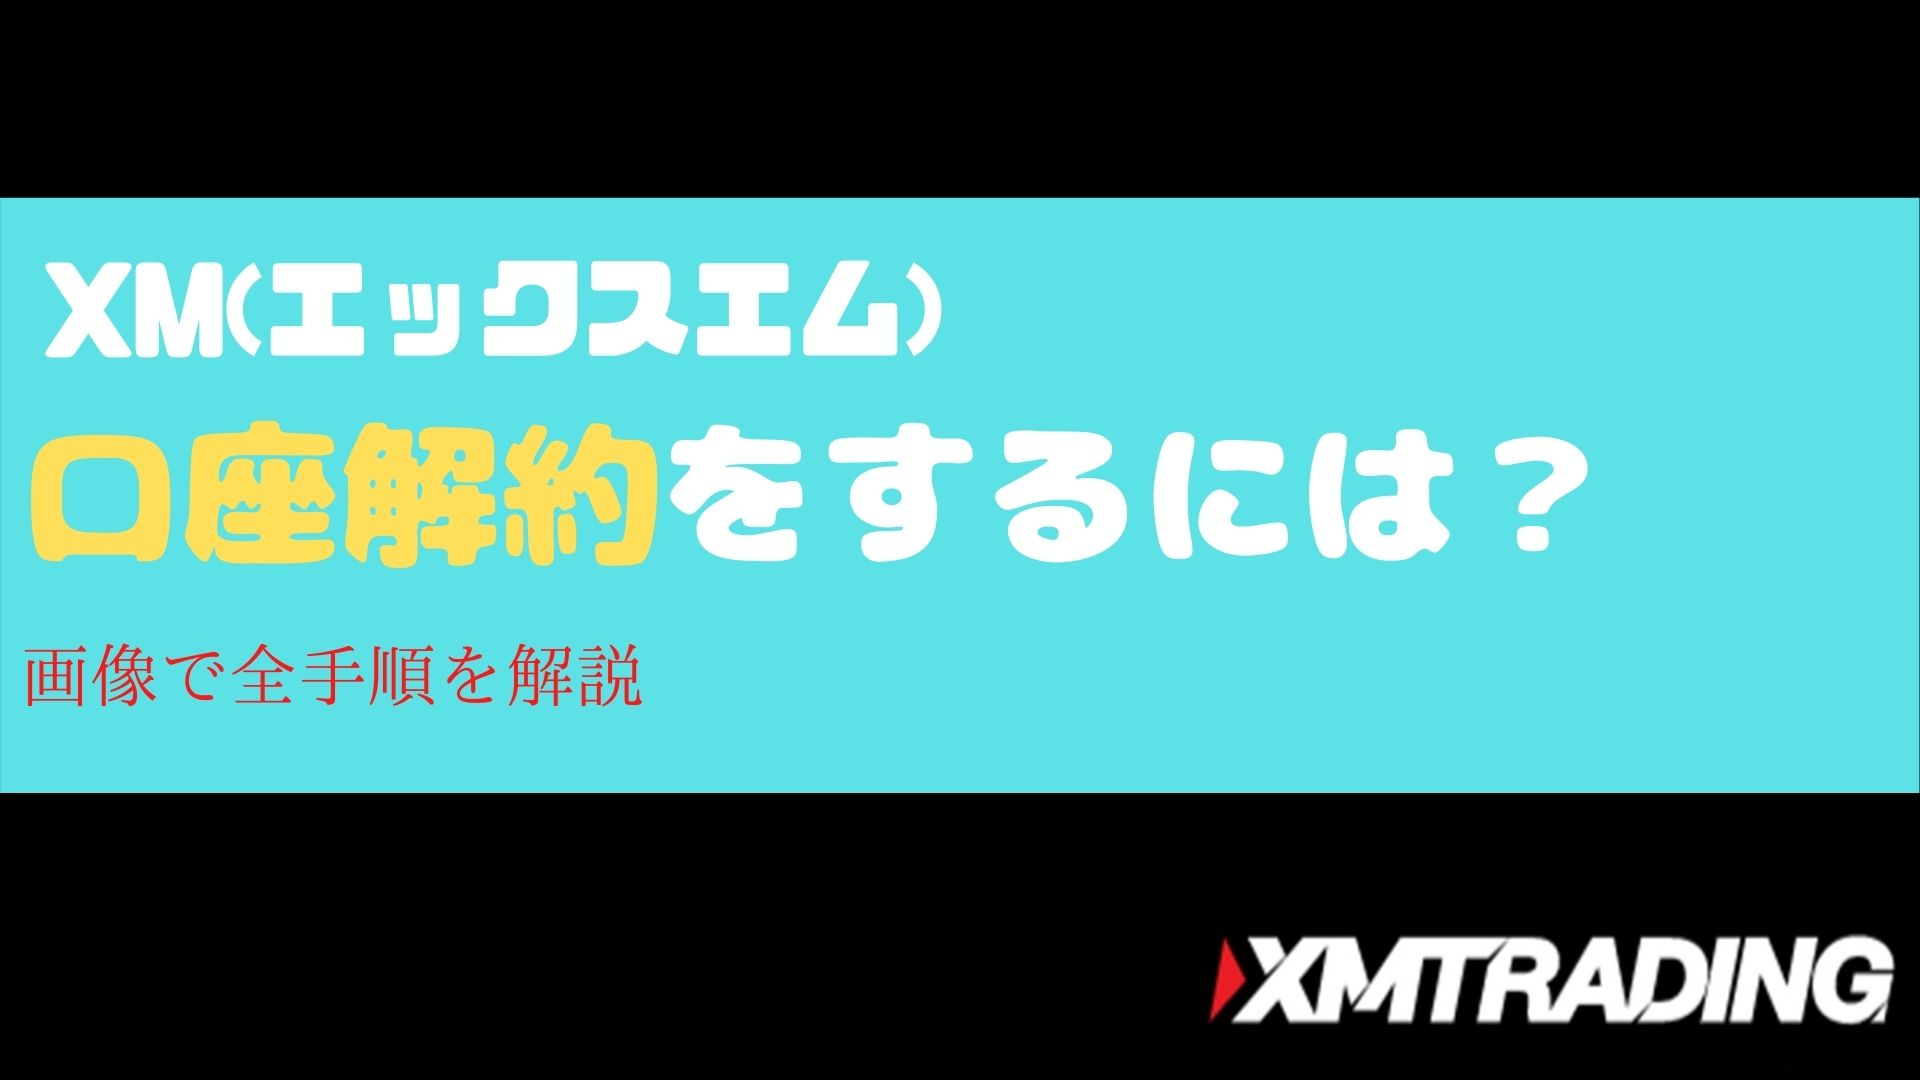 xm-account-cancellation-title